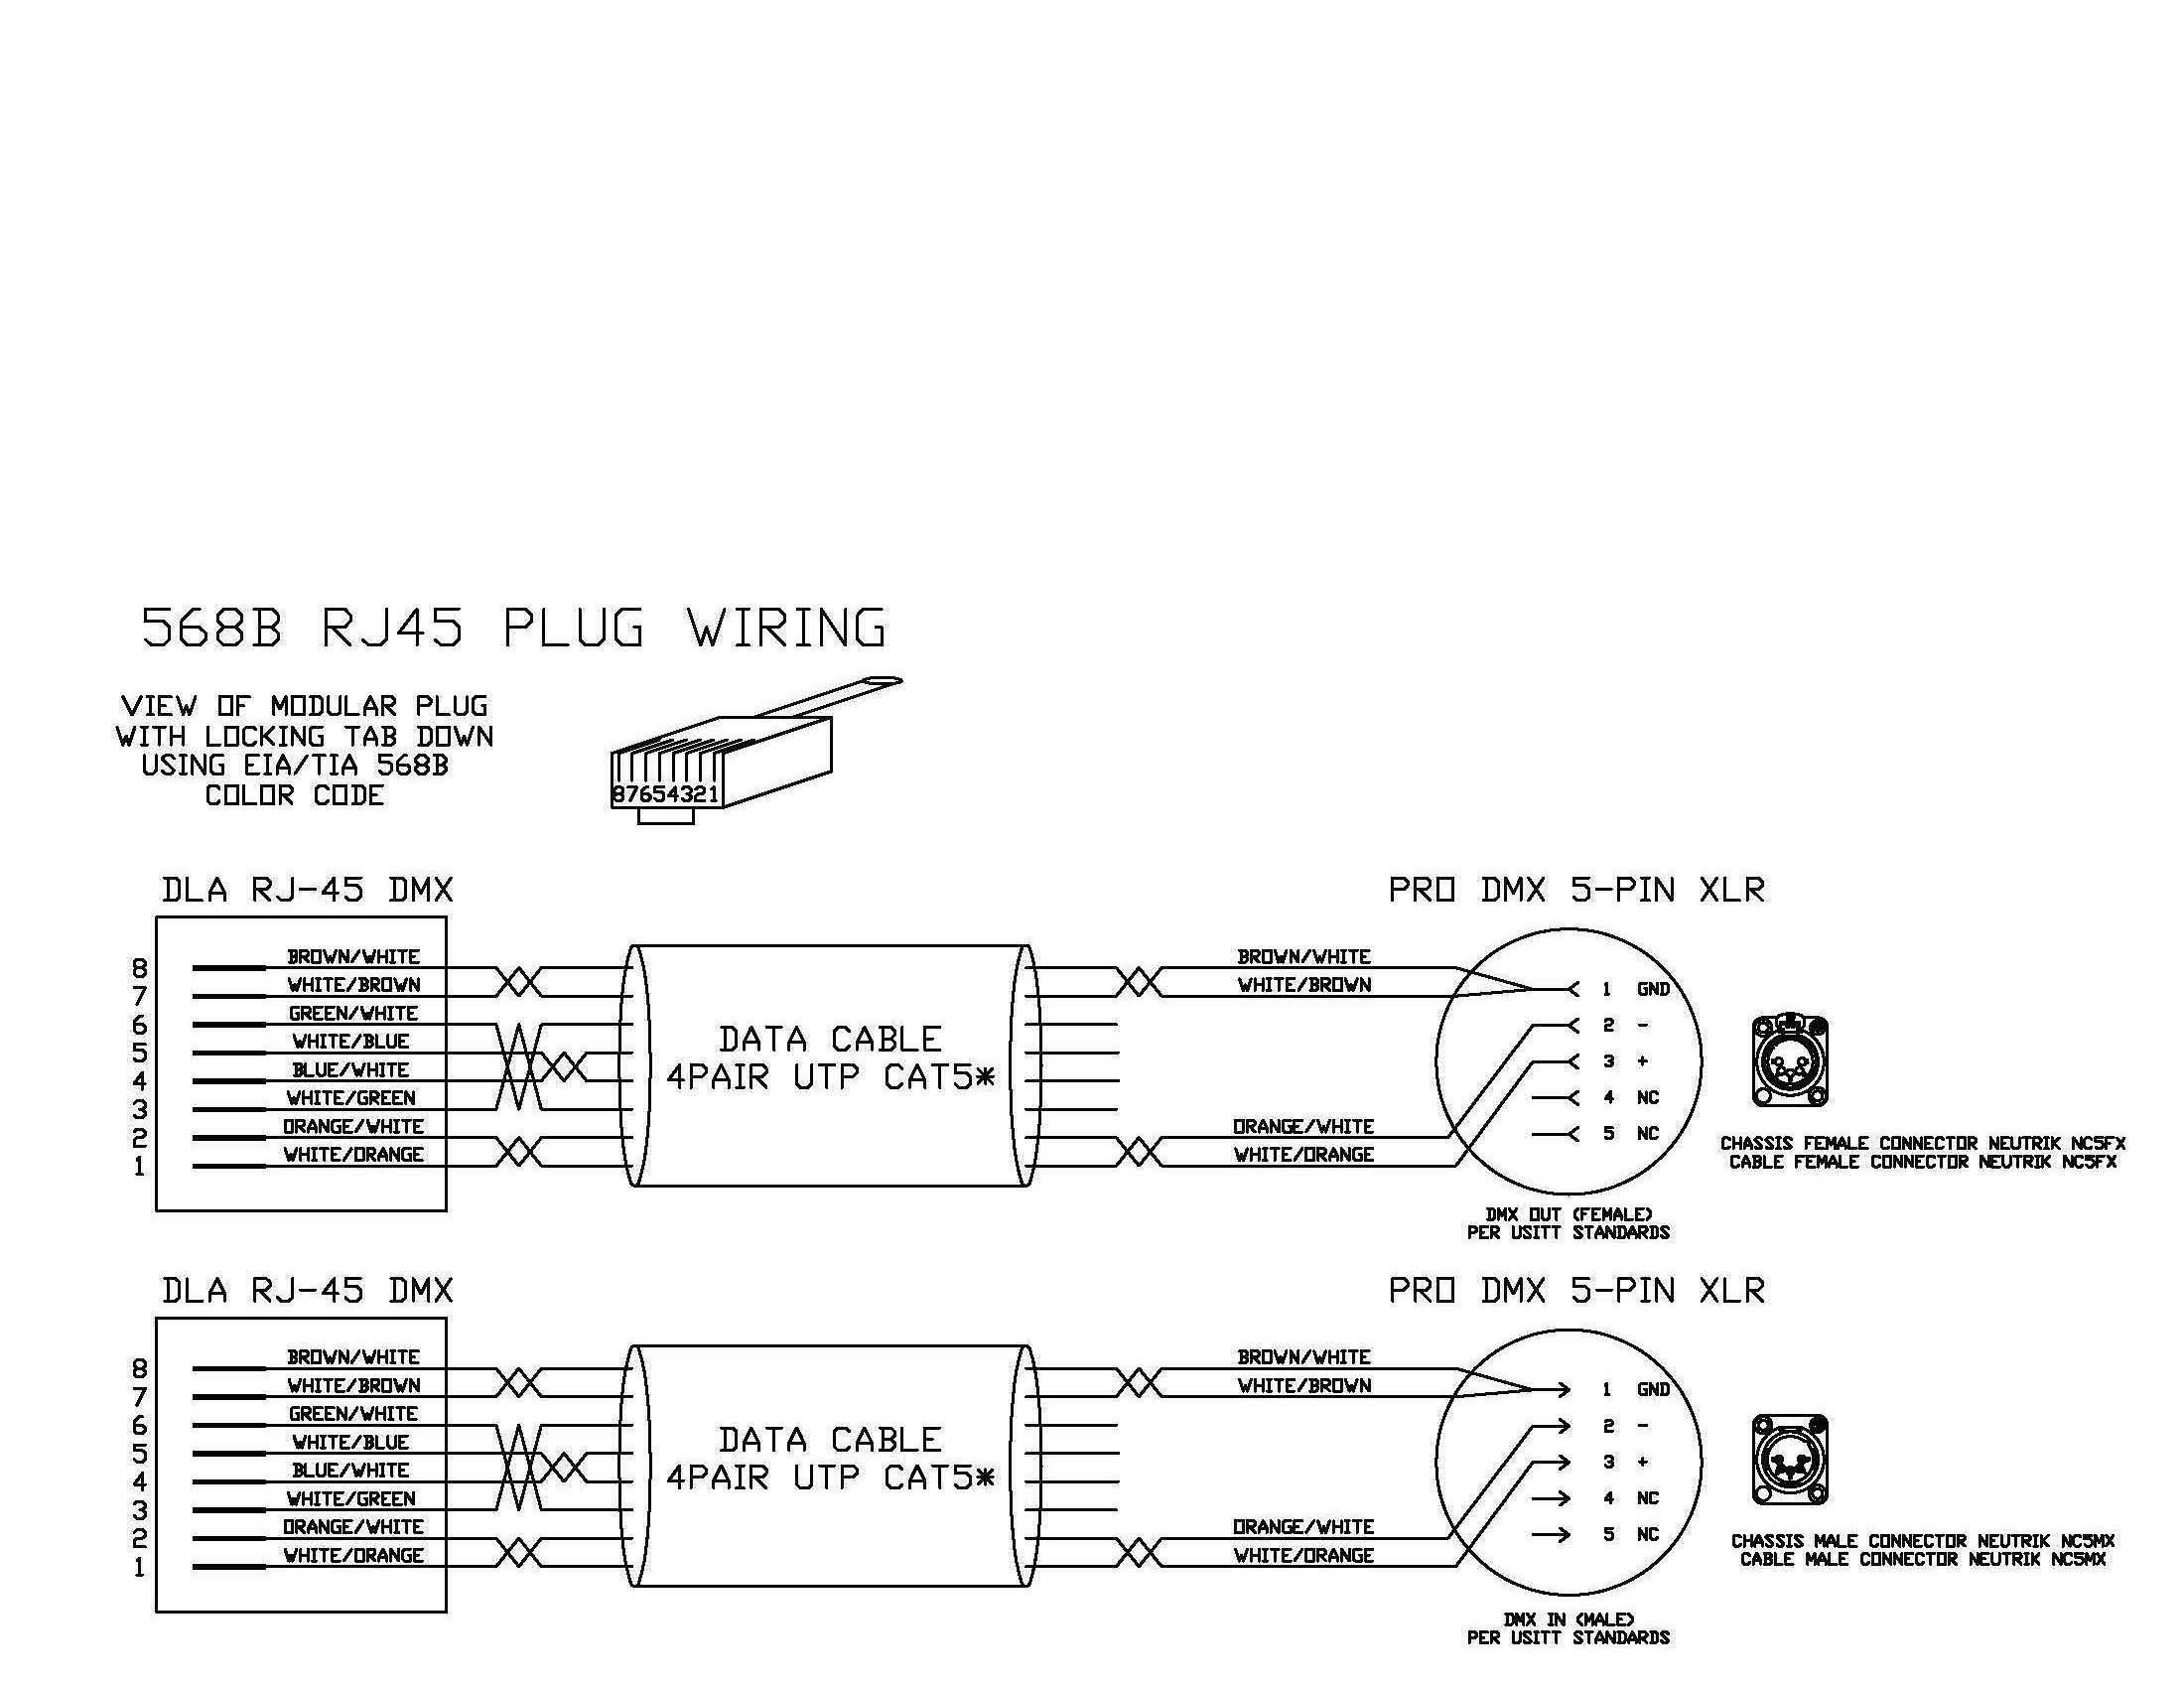 e975ddb6a839e630c21b81db05ca4fa6 xlr to rj45 wiring diagram xlr electrical wiring diagrams xlr wiring color codes at alyssarenee.co